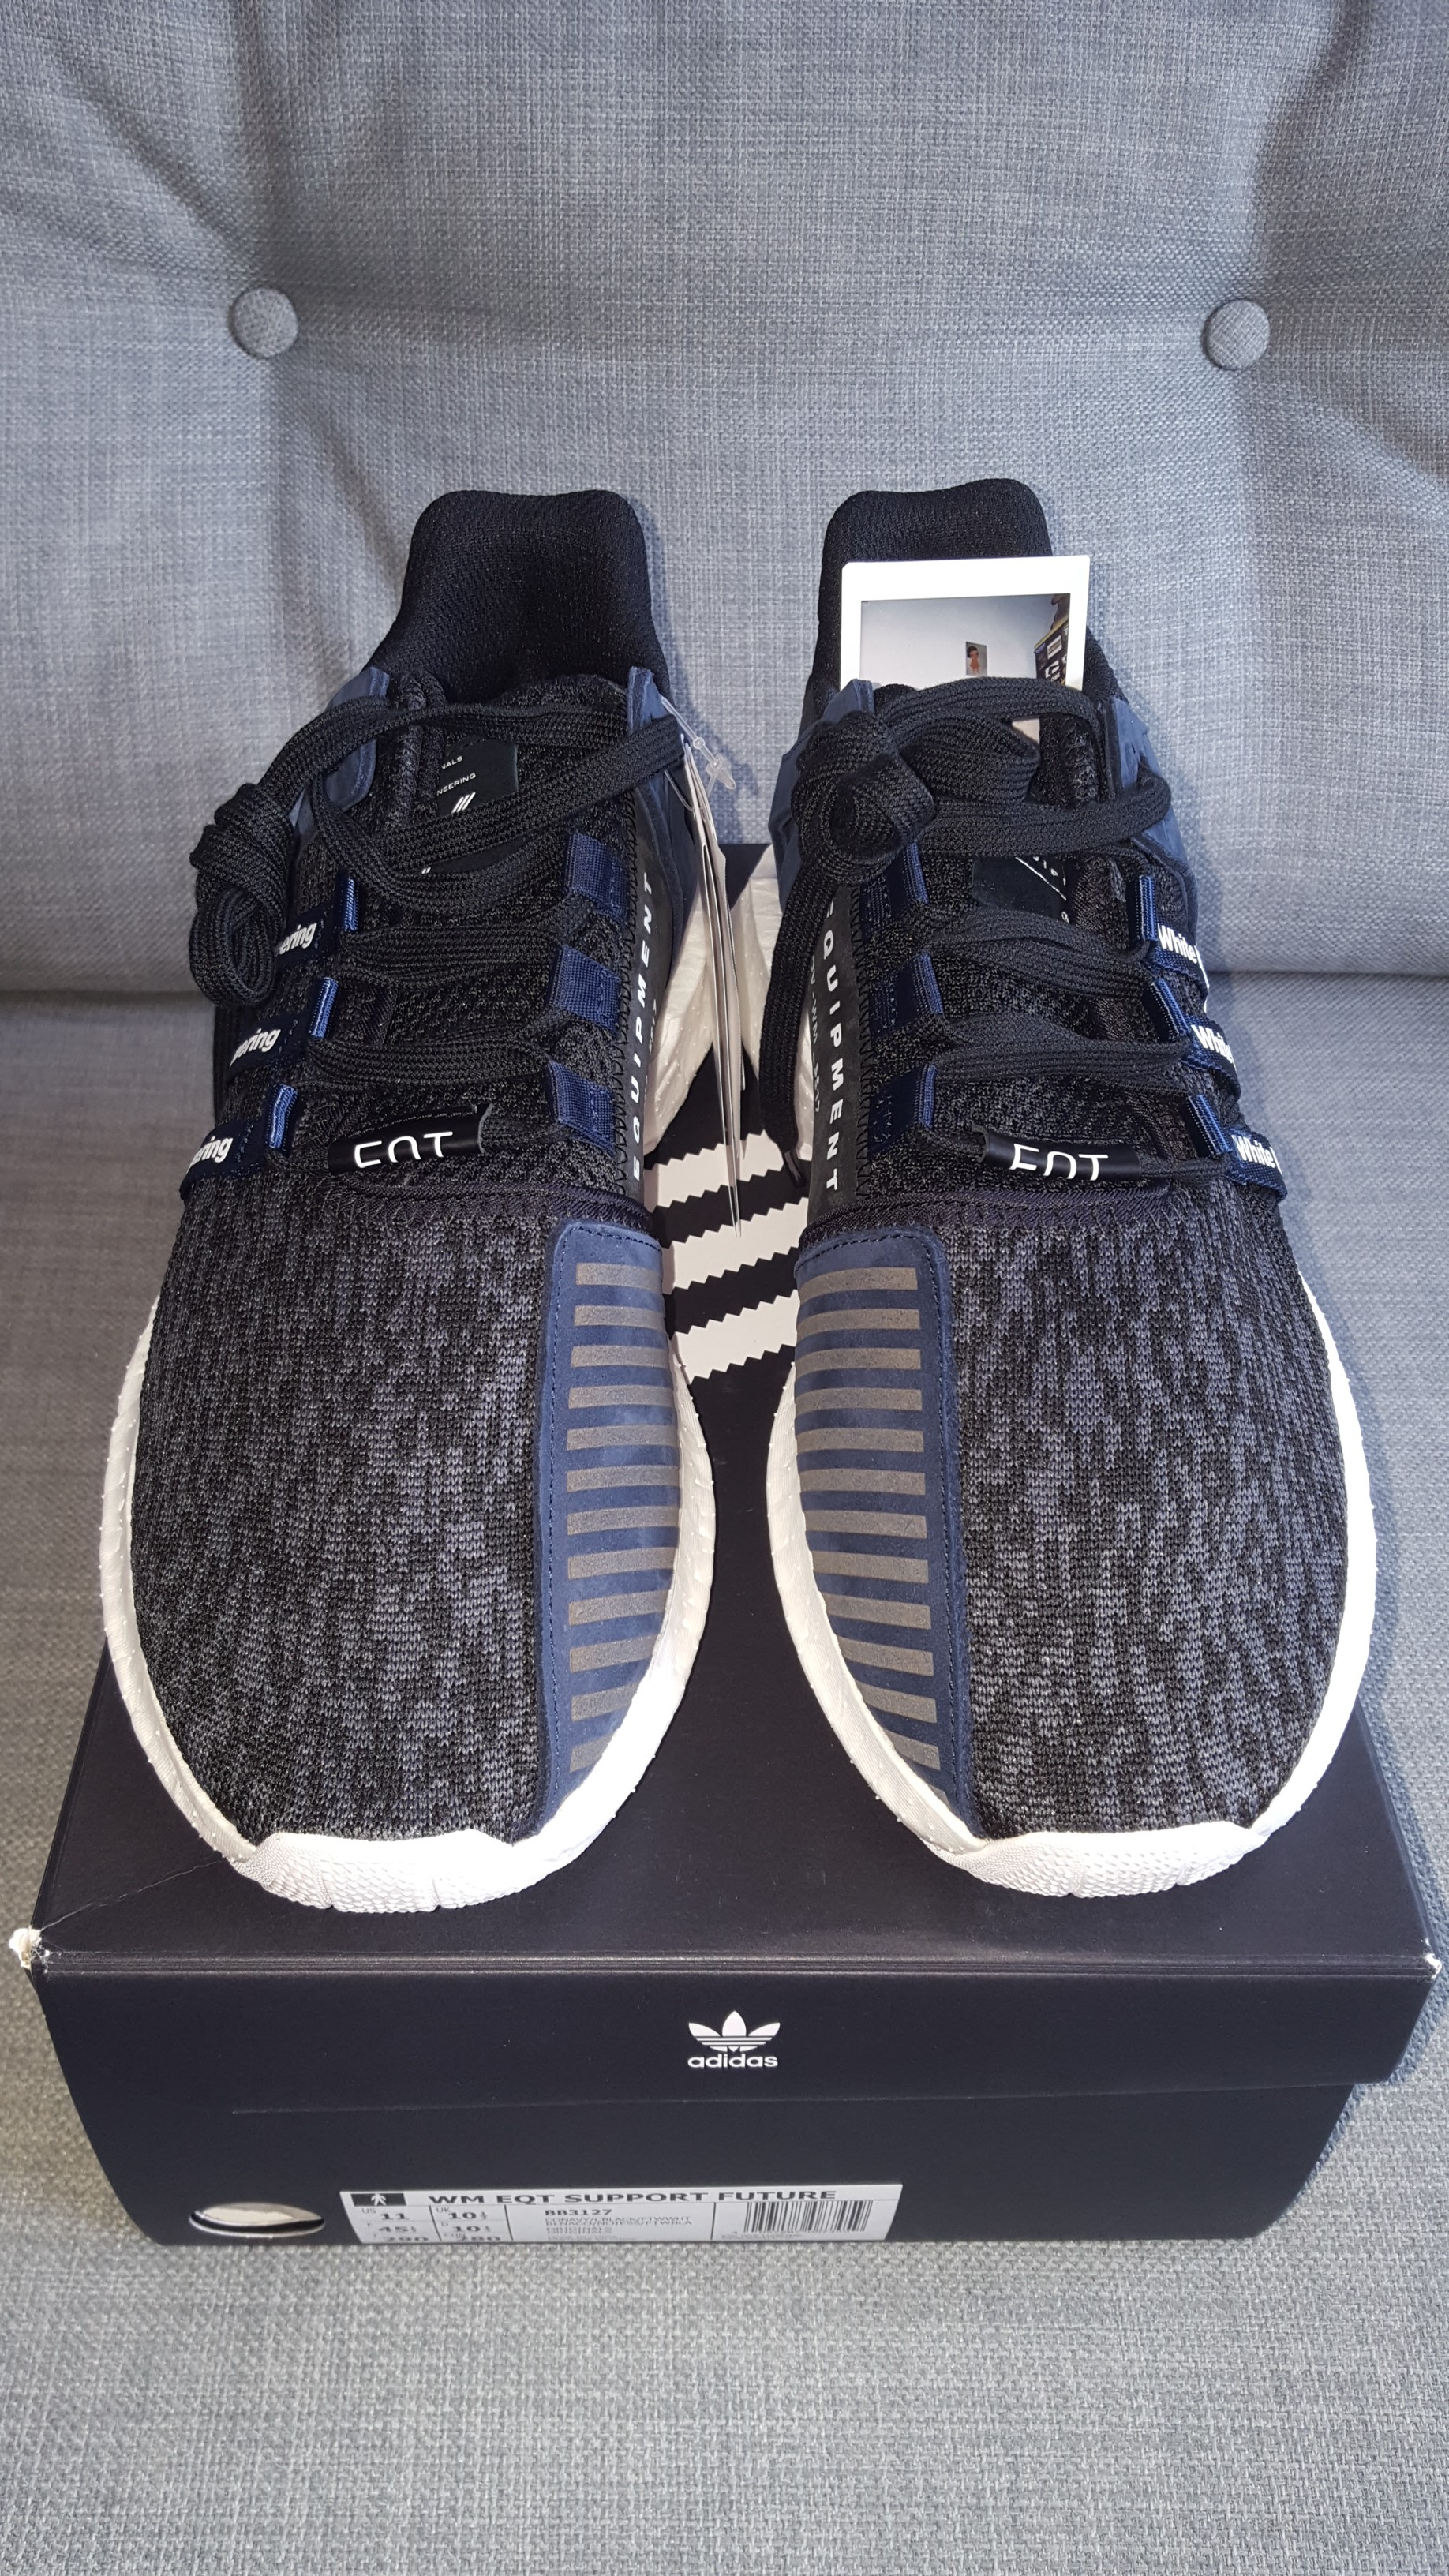 promo code 2819a d97c5 ADIDAS x WHITE MOUNTAINEERING EQT SUPPORT FUTURE